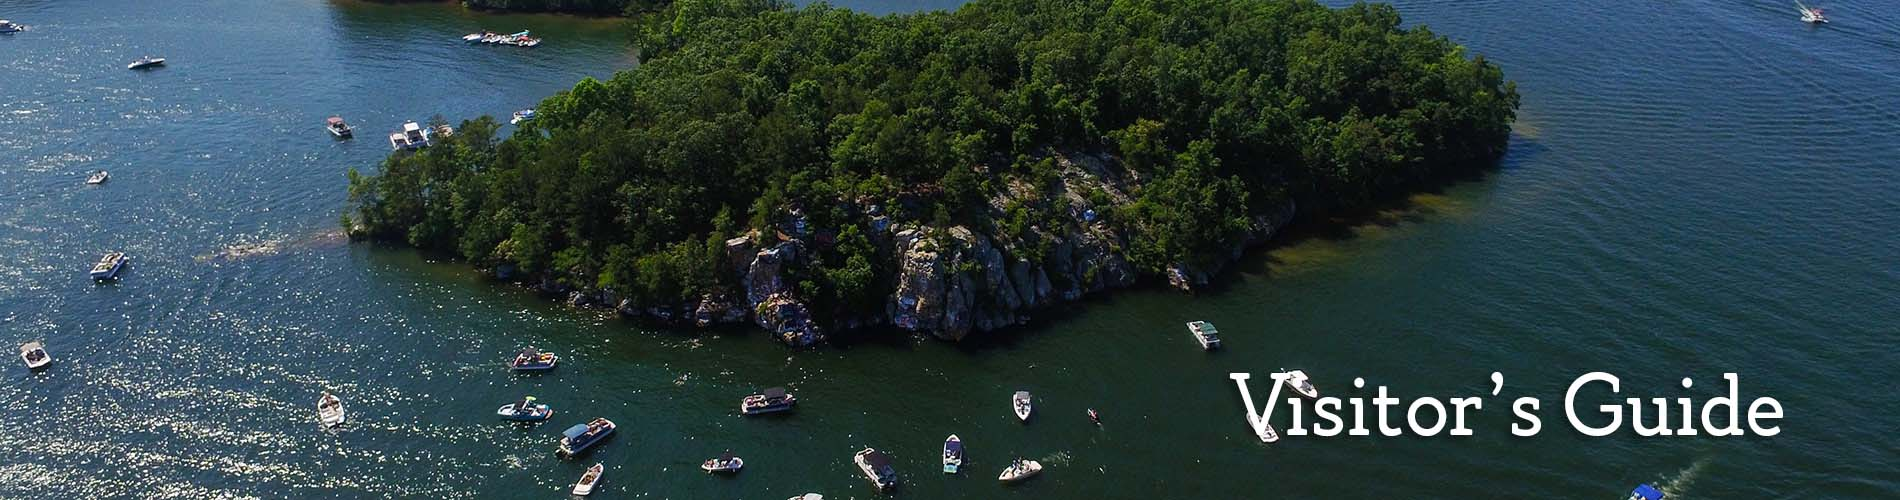 Aerial view of island surrounded by boats